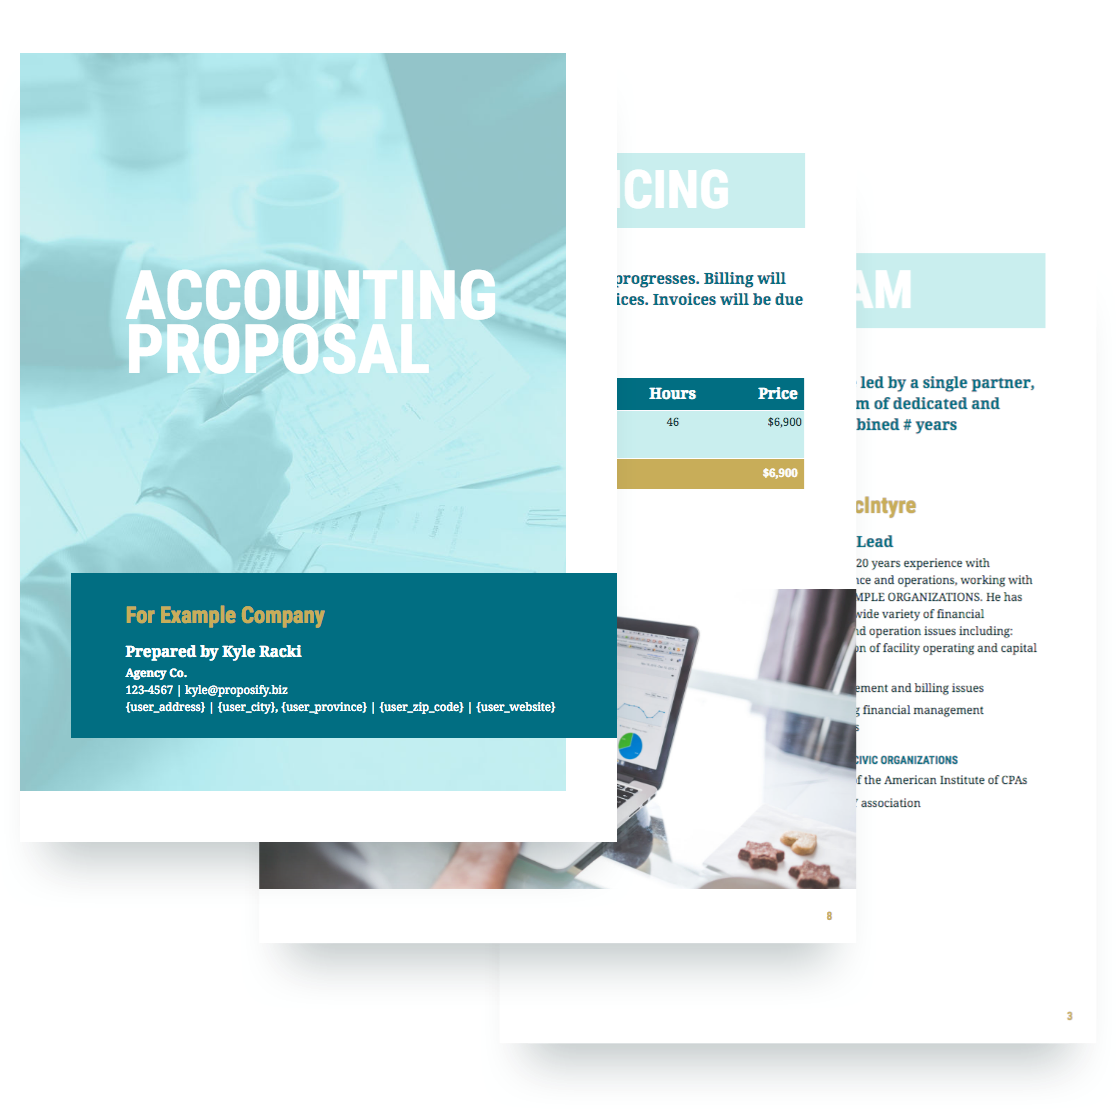 Accounting proposal template free sample accounting proposal template pronofoot35fo Gallery